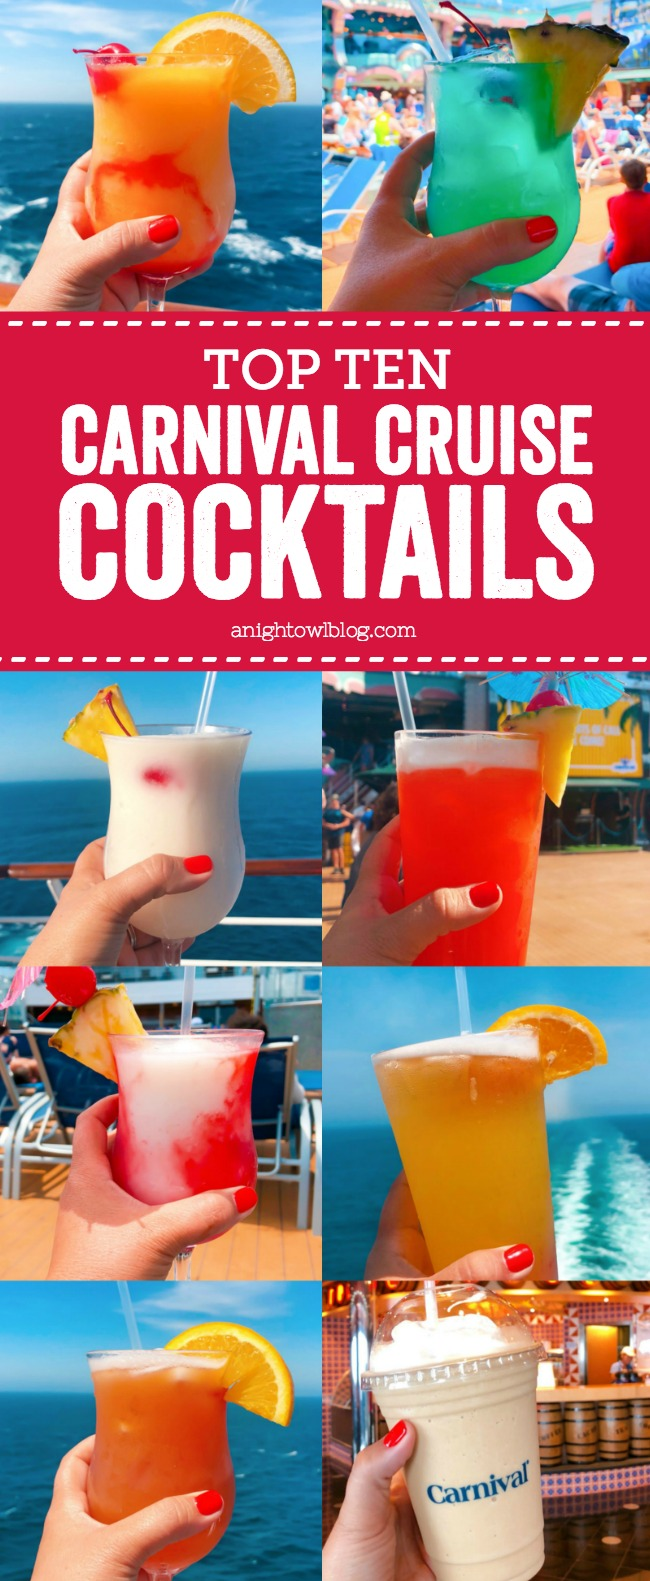 Carnival Halloween Cruise 2019.Top Ten Carnival Cruise Drinks A Night Owl Blog